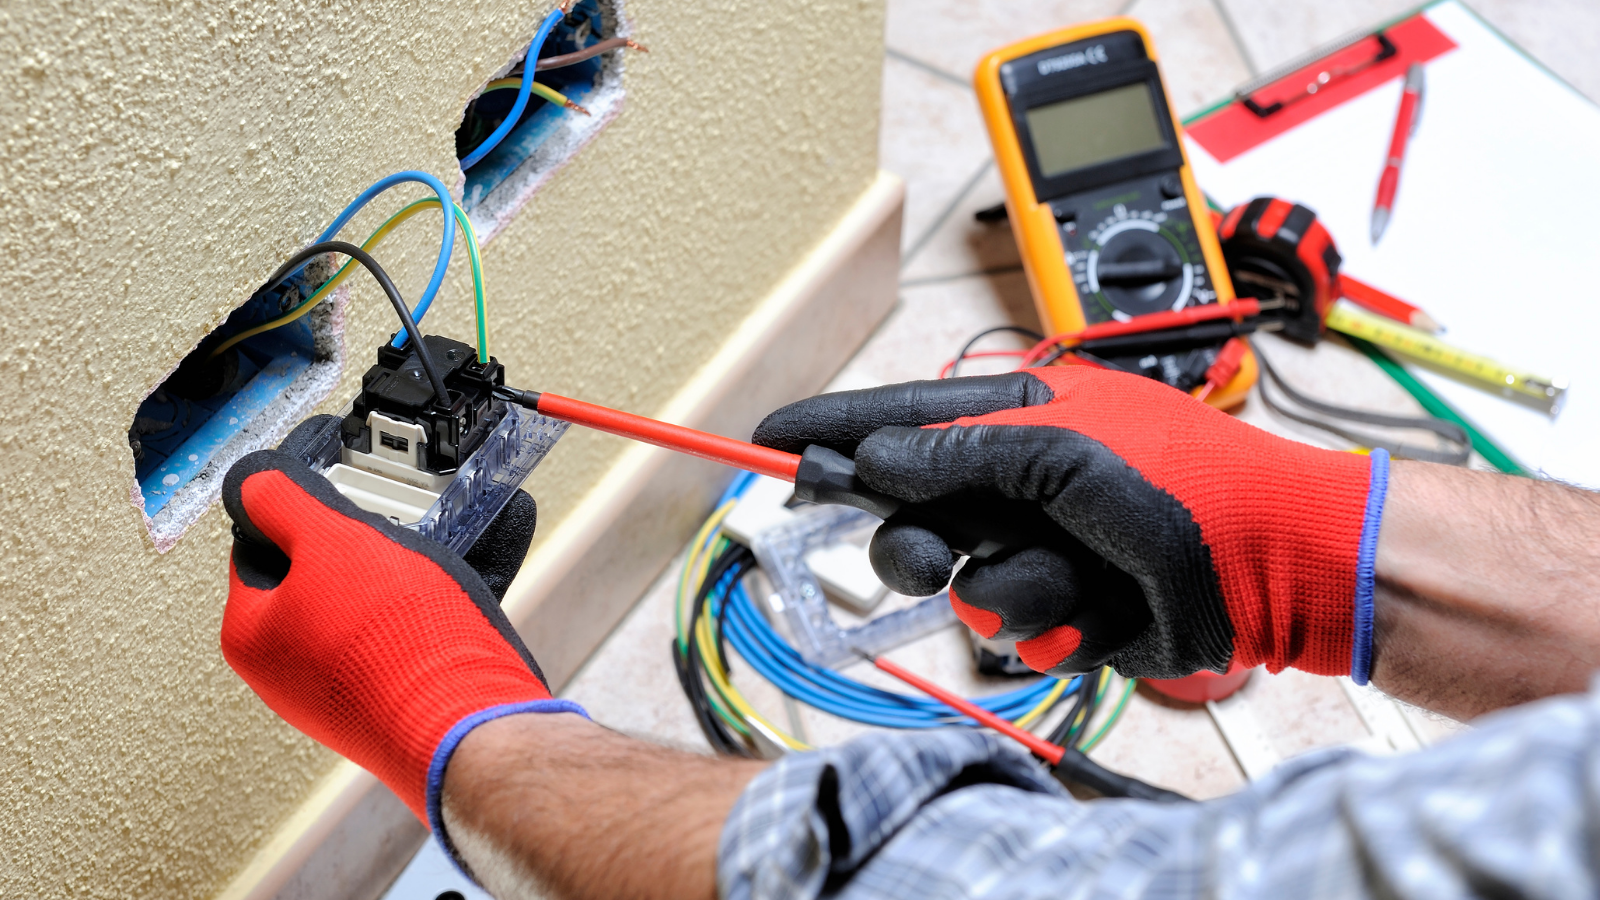 An electrician inspecting